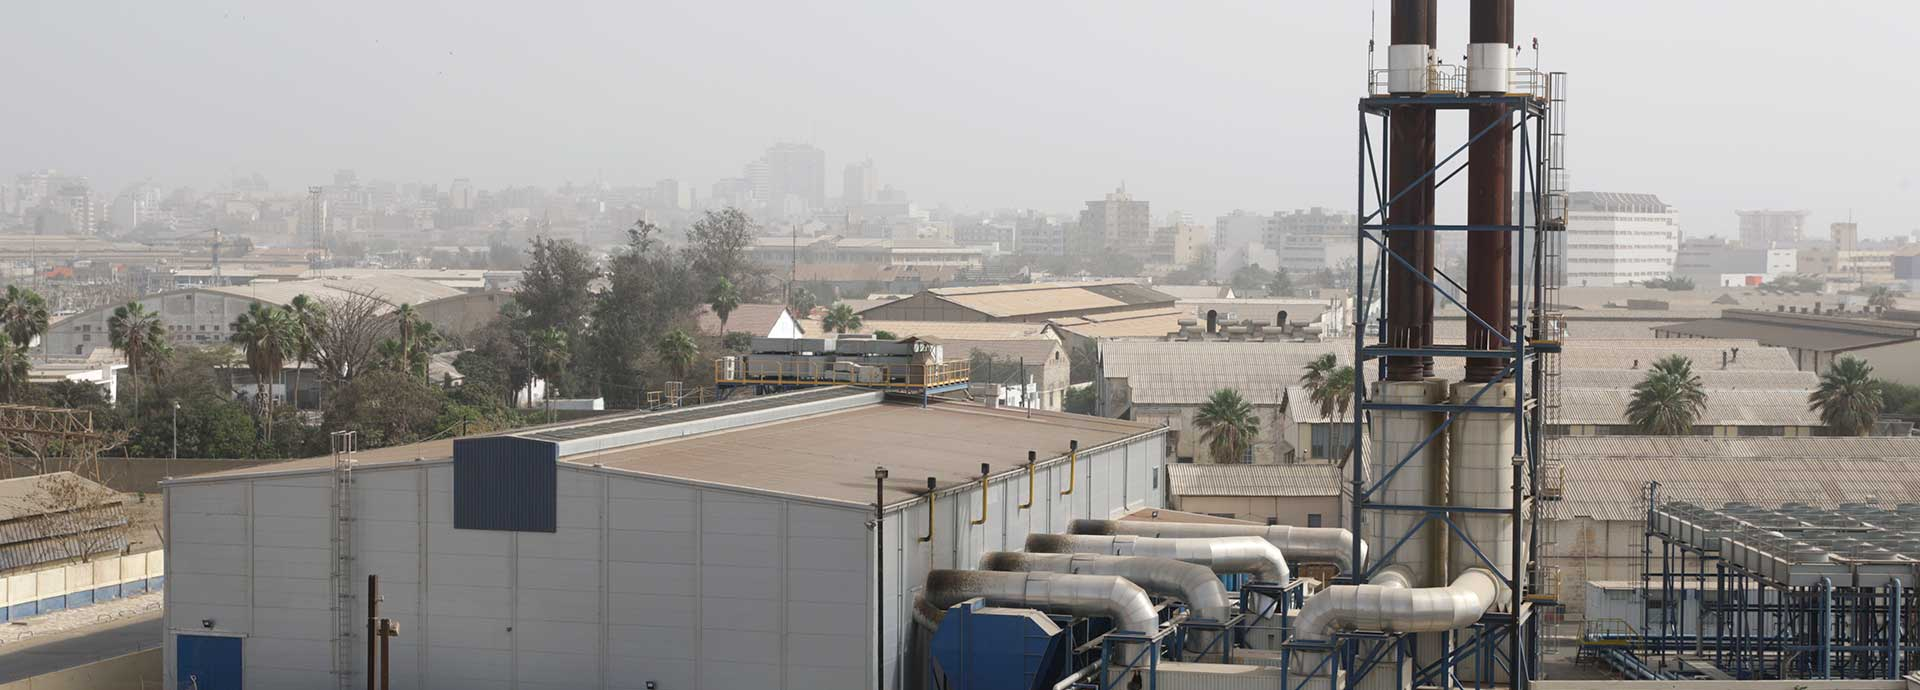 Bringing power plants back to life in West Africa